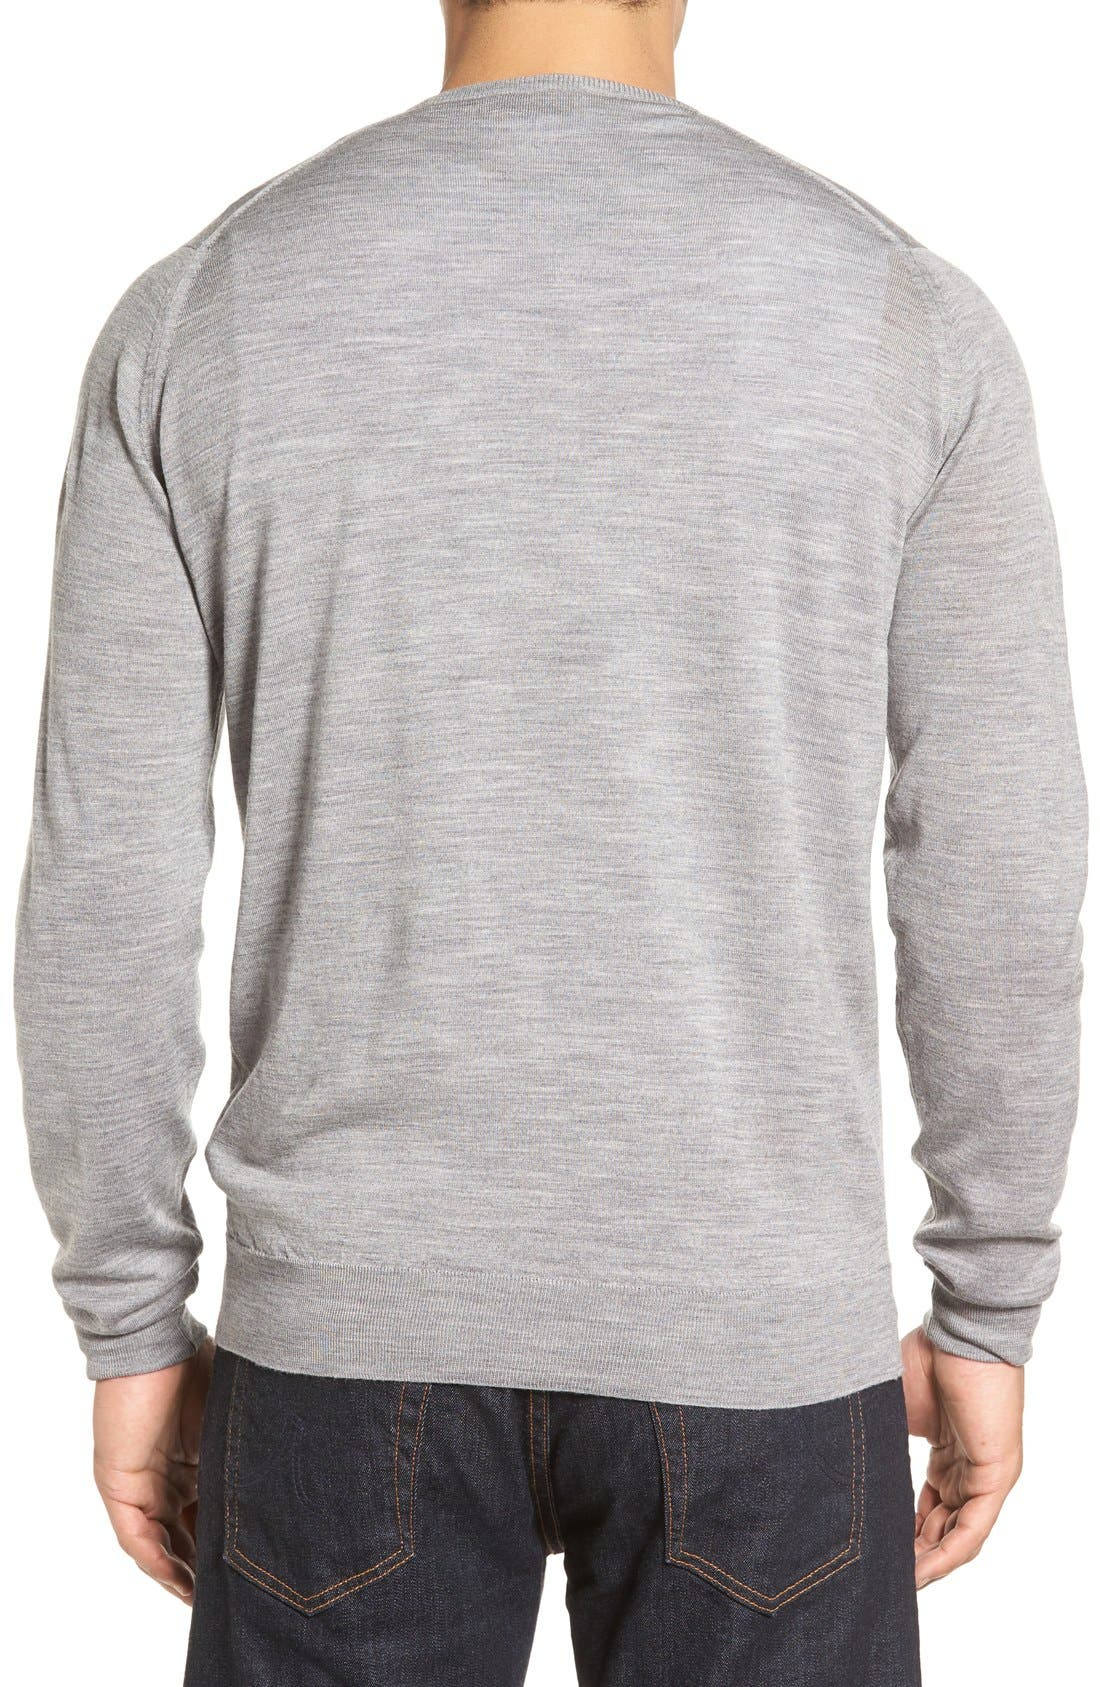 'Marcus' Easy Fit Crewneck Wool Sweater,                             Alternate thumbnail 2, color,                             Silver